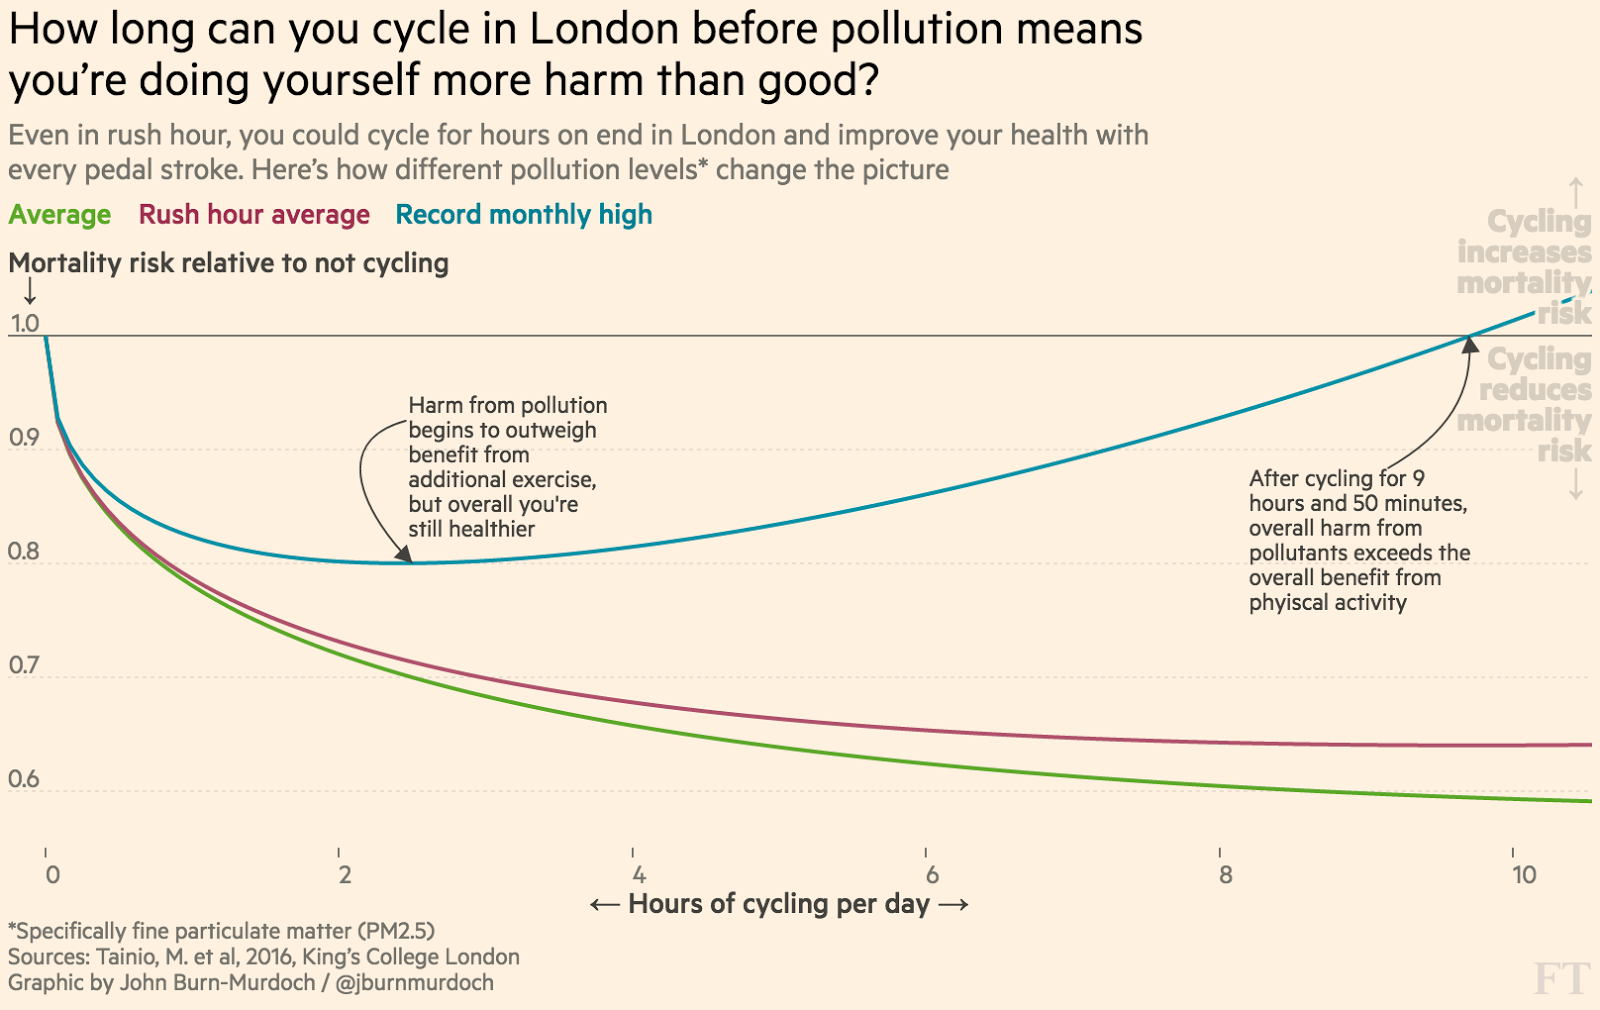 How long it takes cycling in cities before pollution means it does you more harm than good